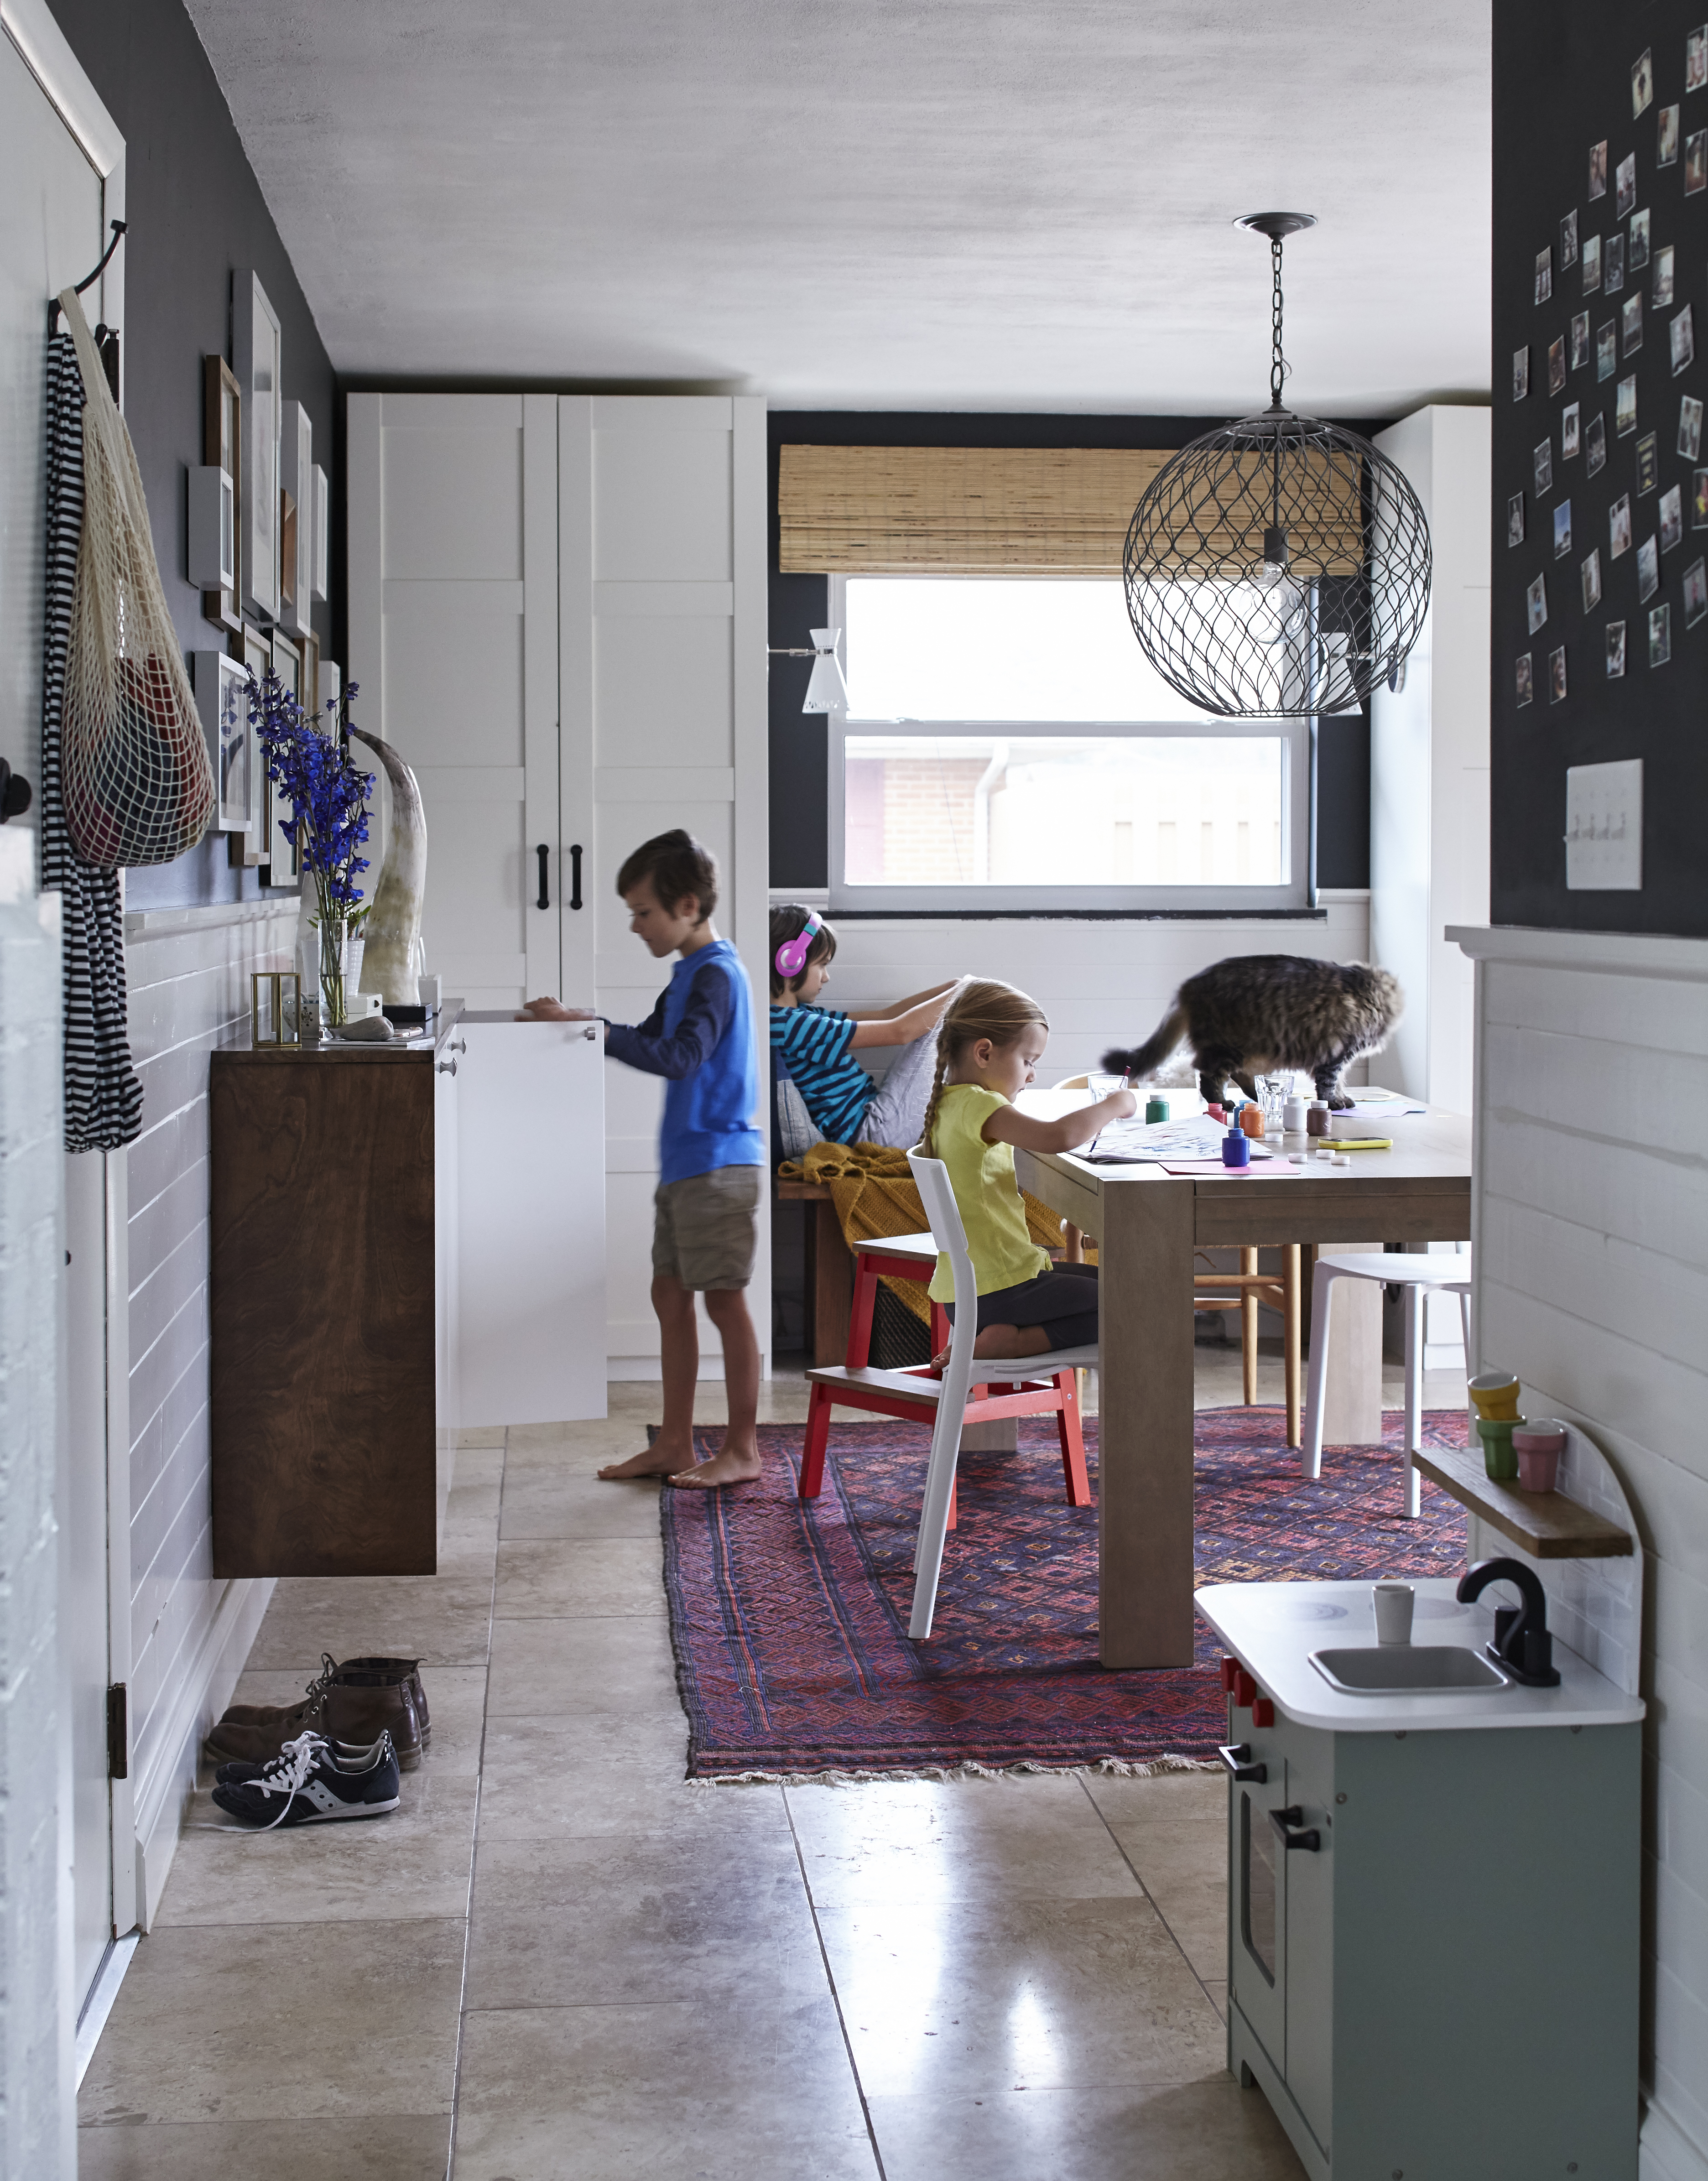 009_ikea_miller_mudroom_680